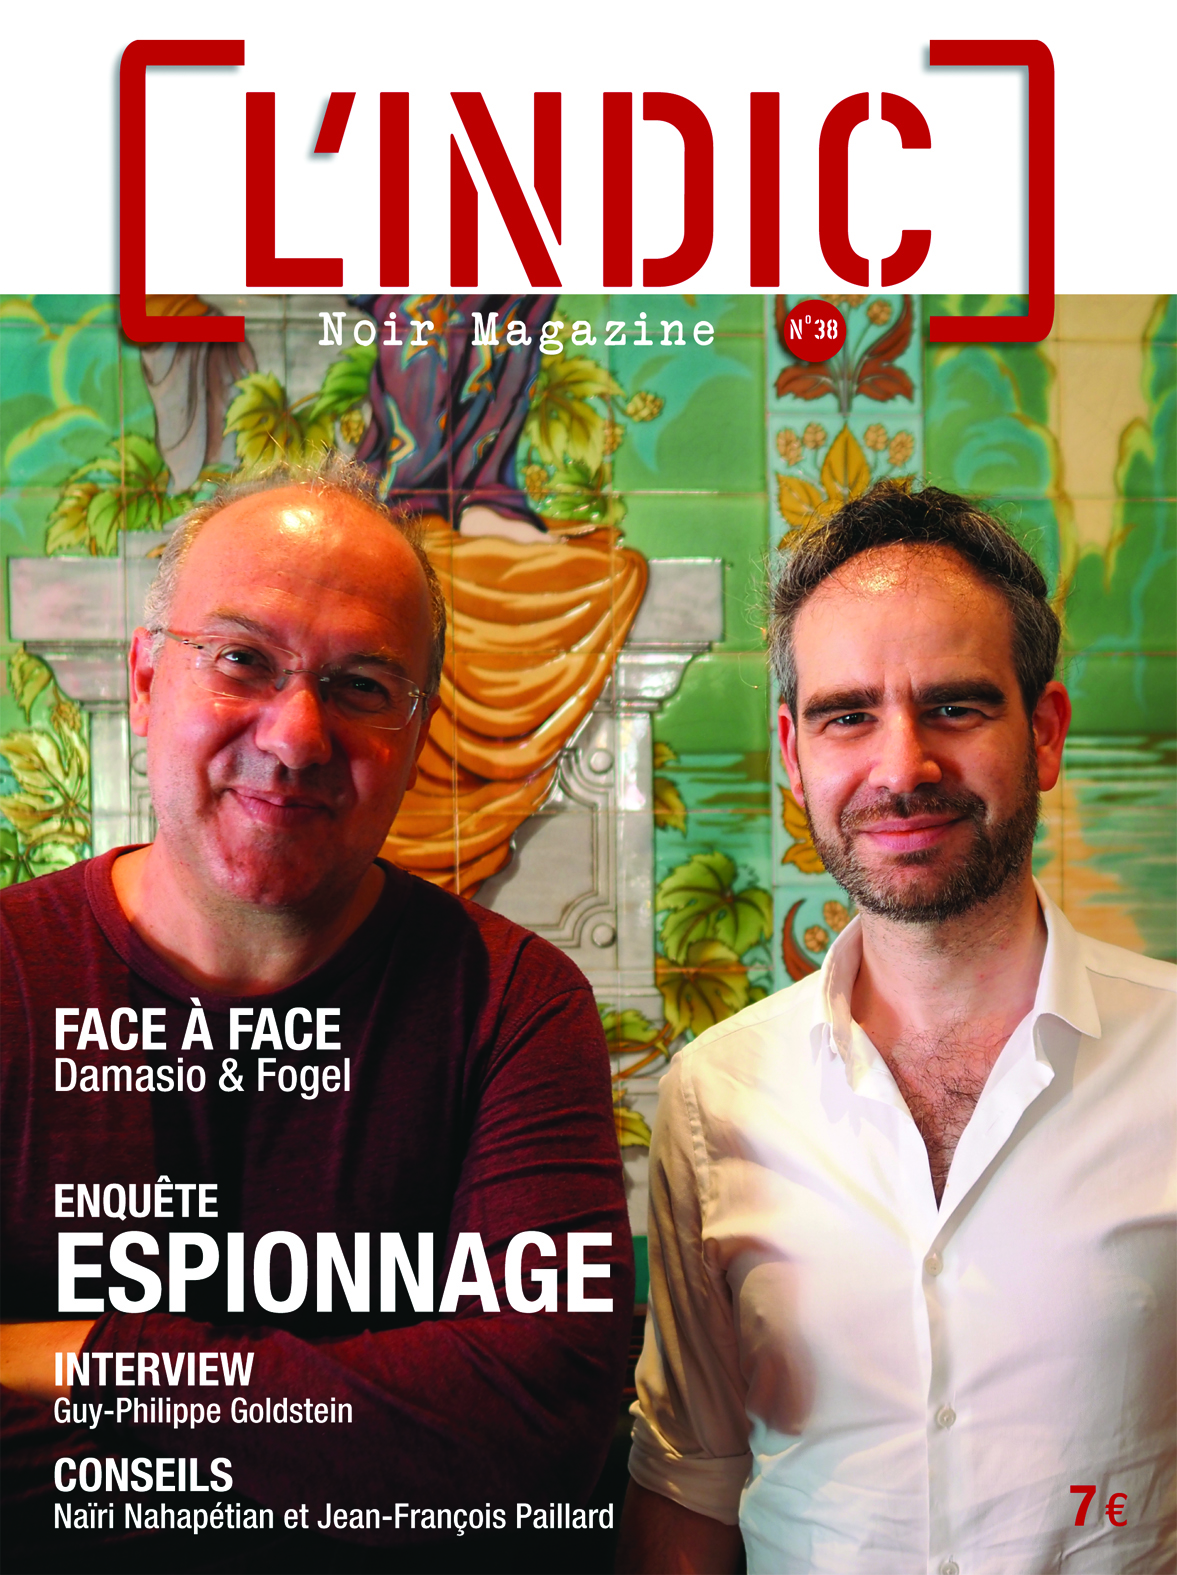 L'Indic n°38, sommaire